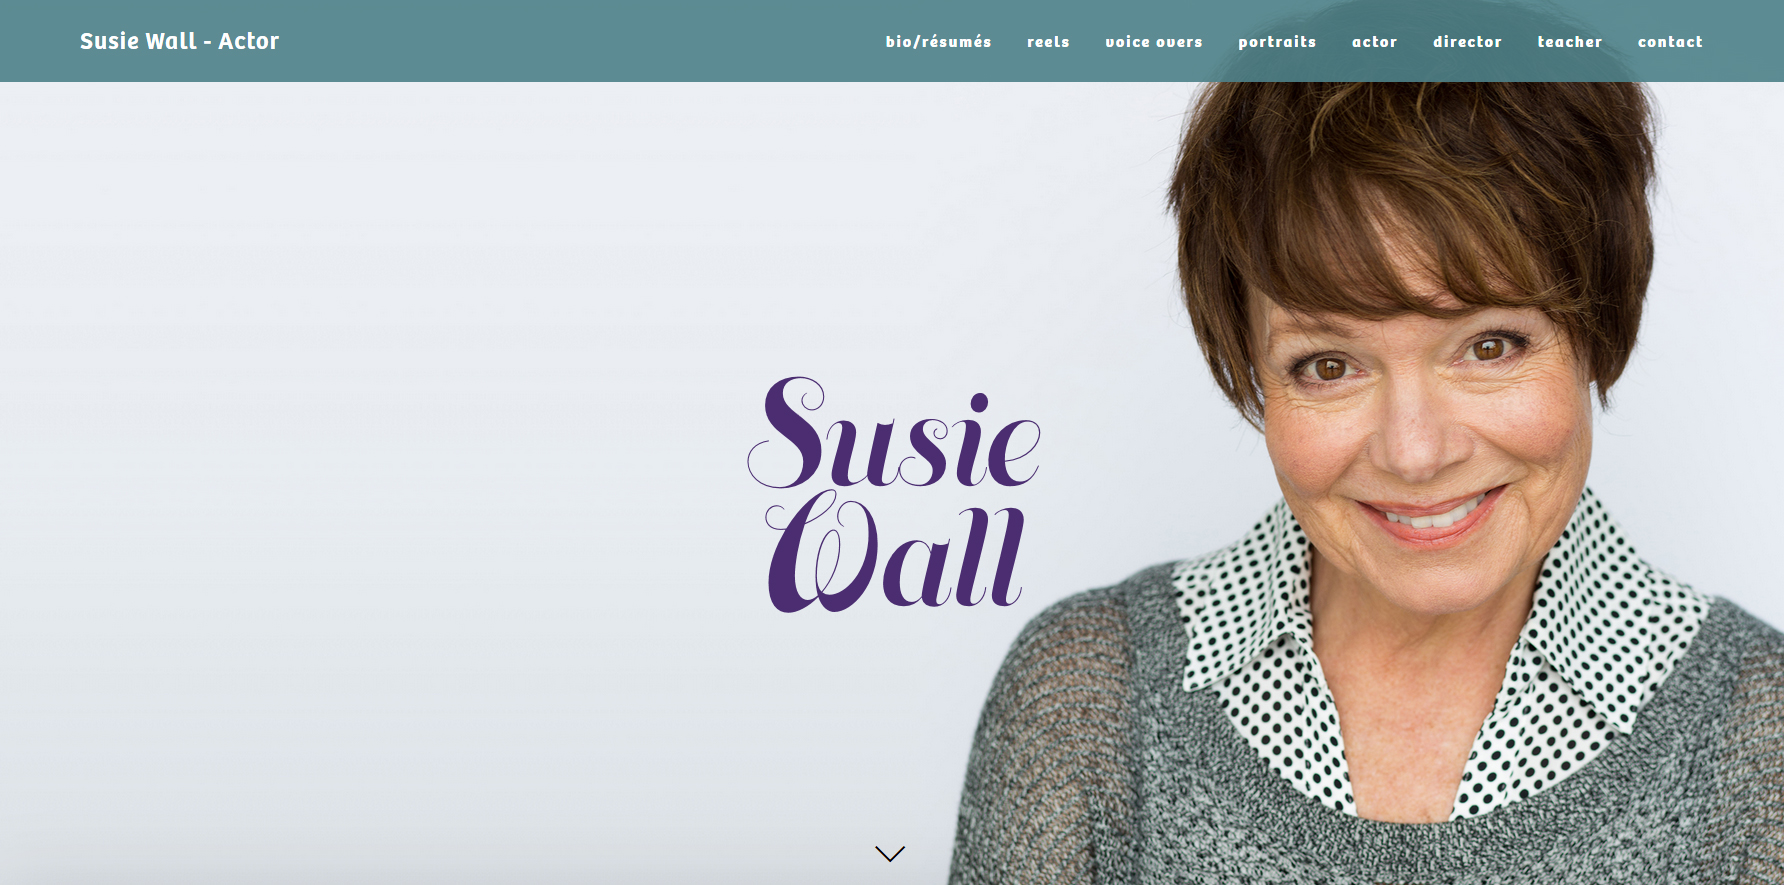 """Susie has worked extensively in Regional Theatres, Film, TV & Radio. In St Louis she has worked at The Repertory Theatre, The Shakespeare Festival, Stages, Insight Theatre, Hotcity, Stray Dog and The New Jewish Theatre. She has performed Regionally at The Cincinnati Playhouse in """"Voice of the Prairie"""" & """"Inherit the Wind""""."""